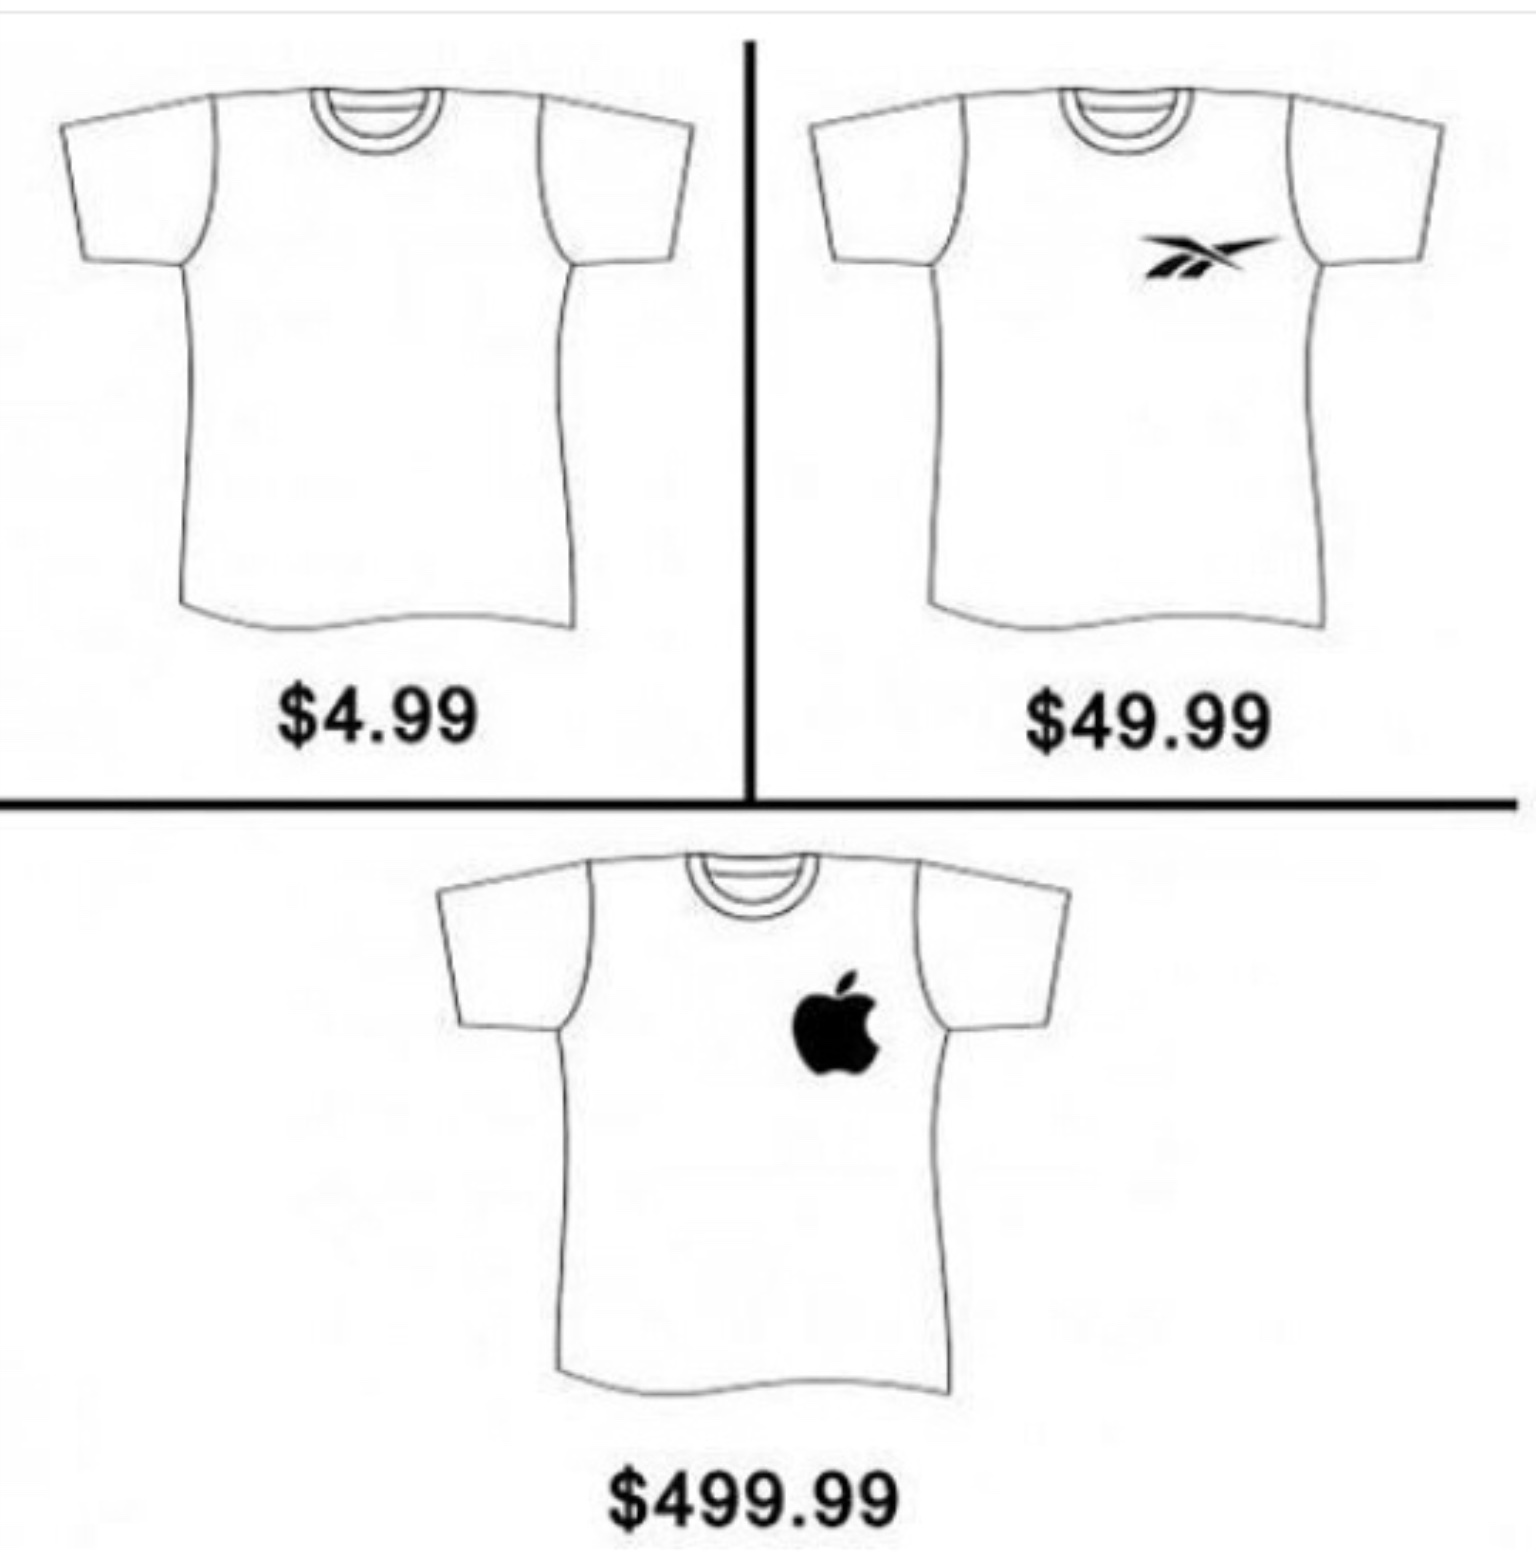 Apple - meme